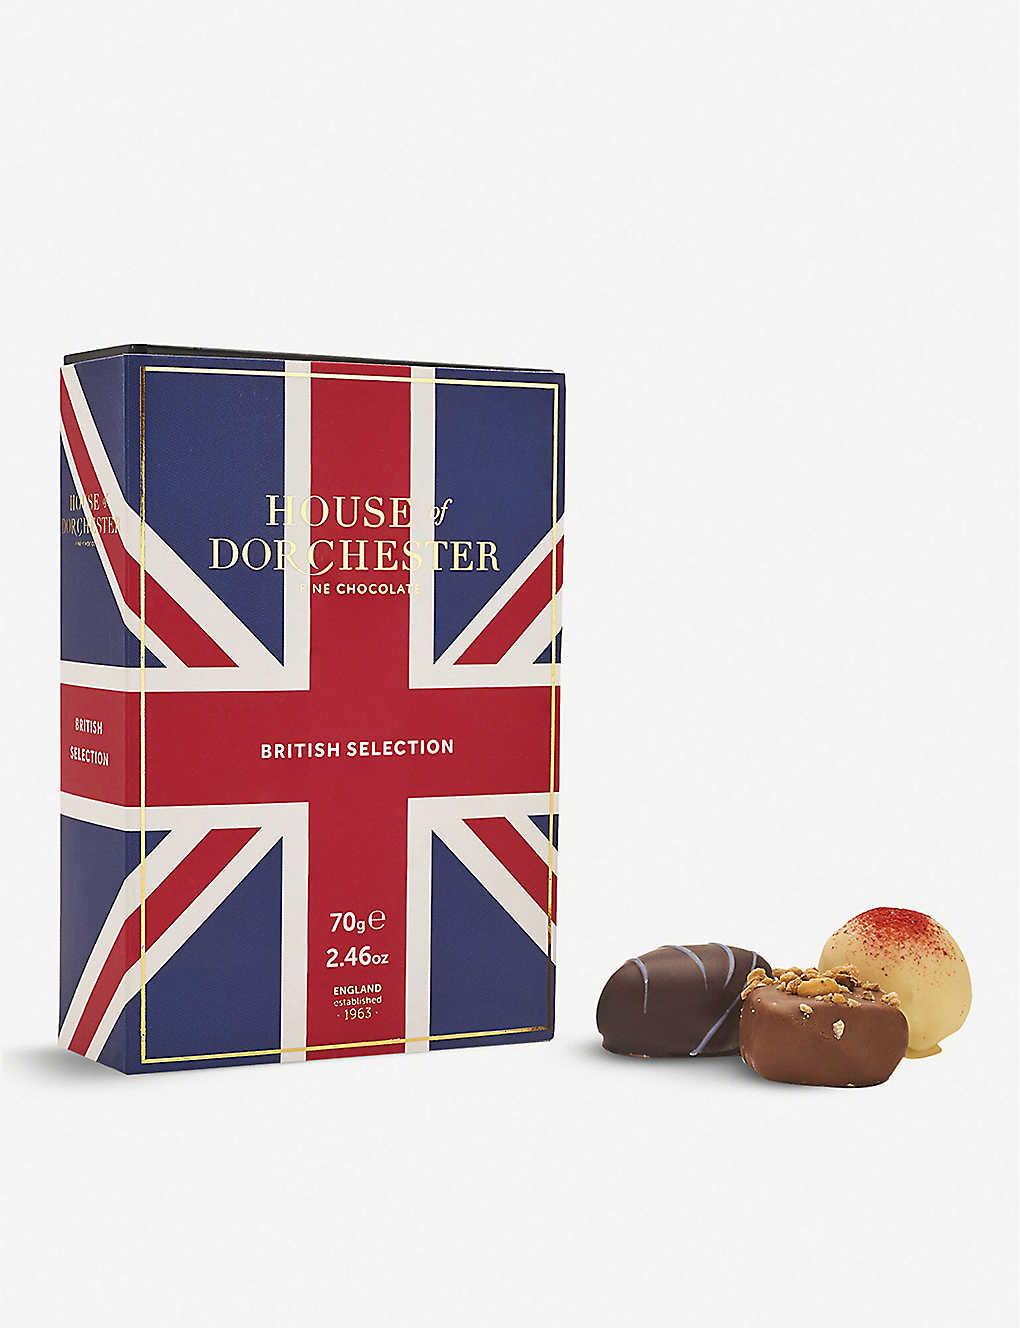 HOUSE OF DORCHESTER: British Selection assorted chocolates box of 6